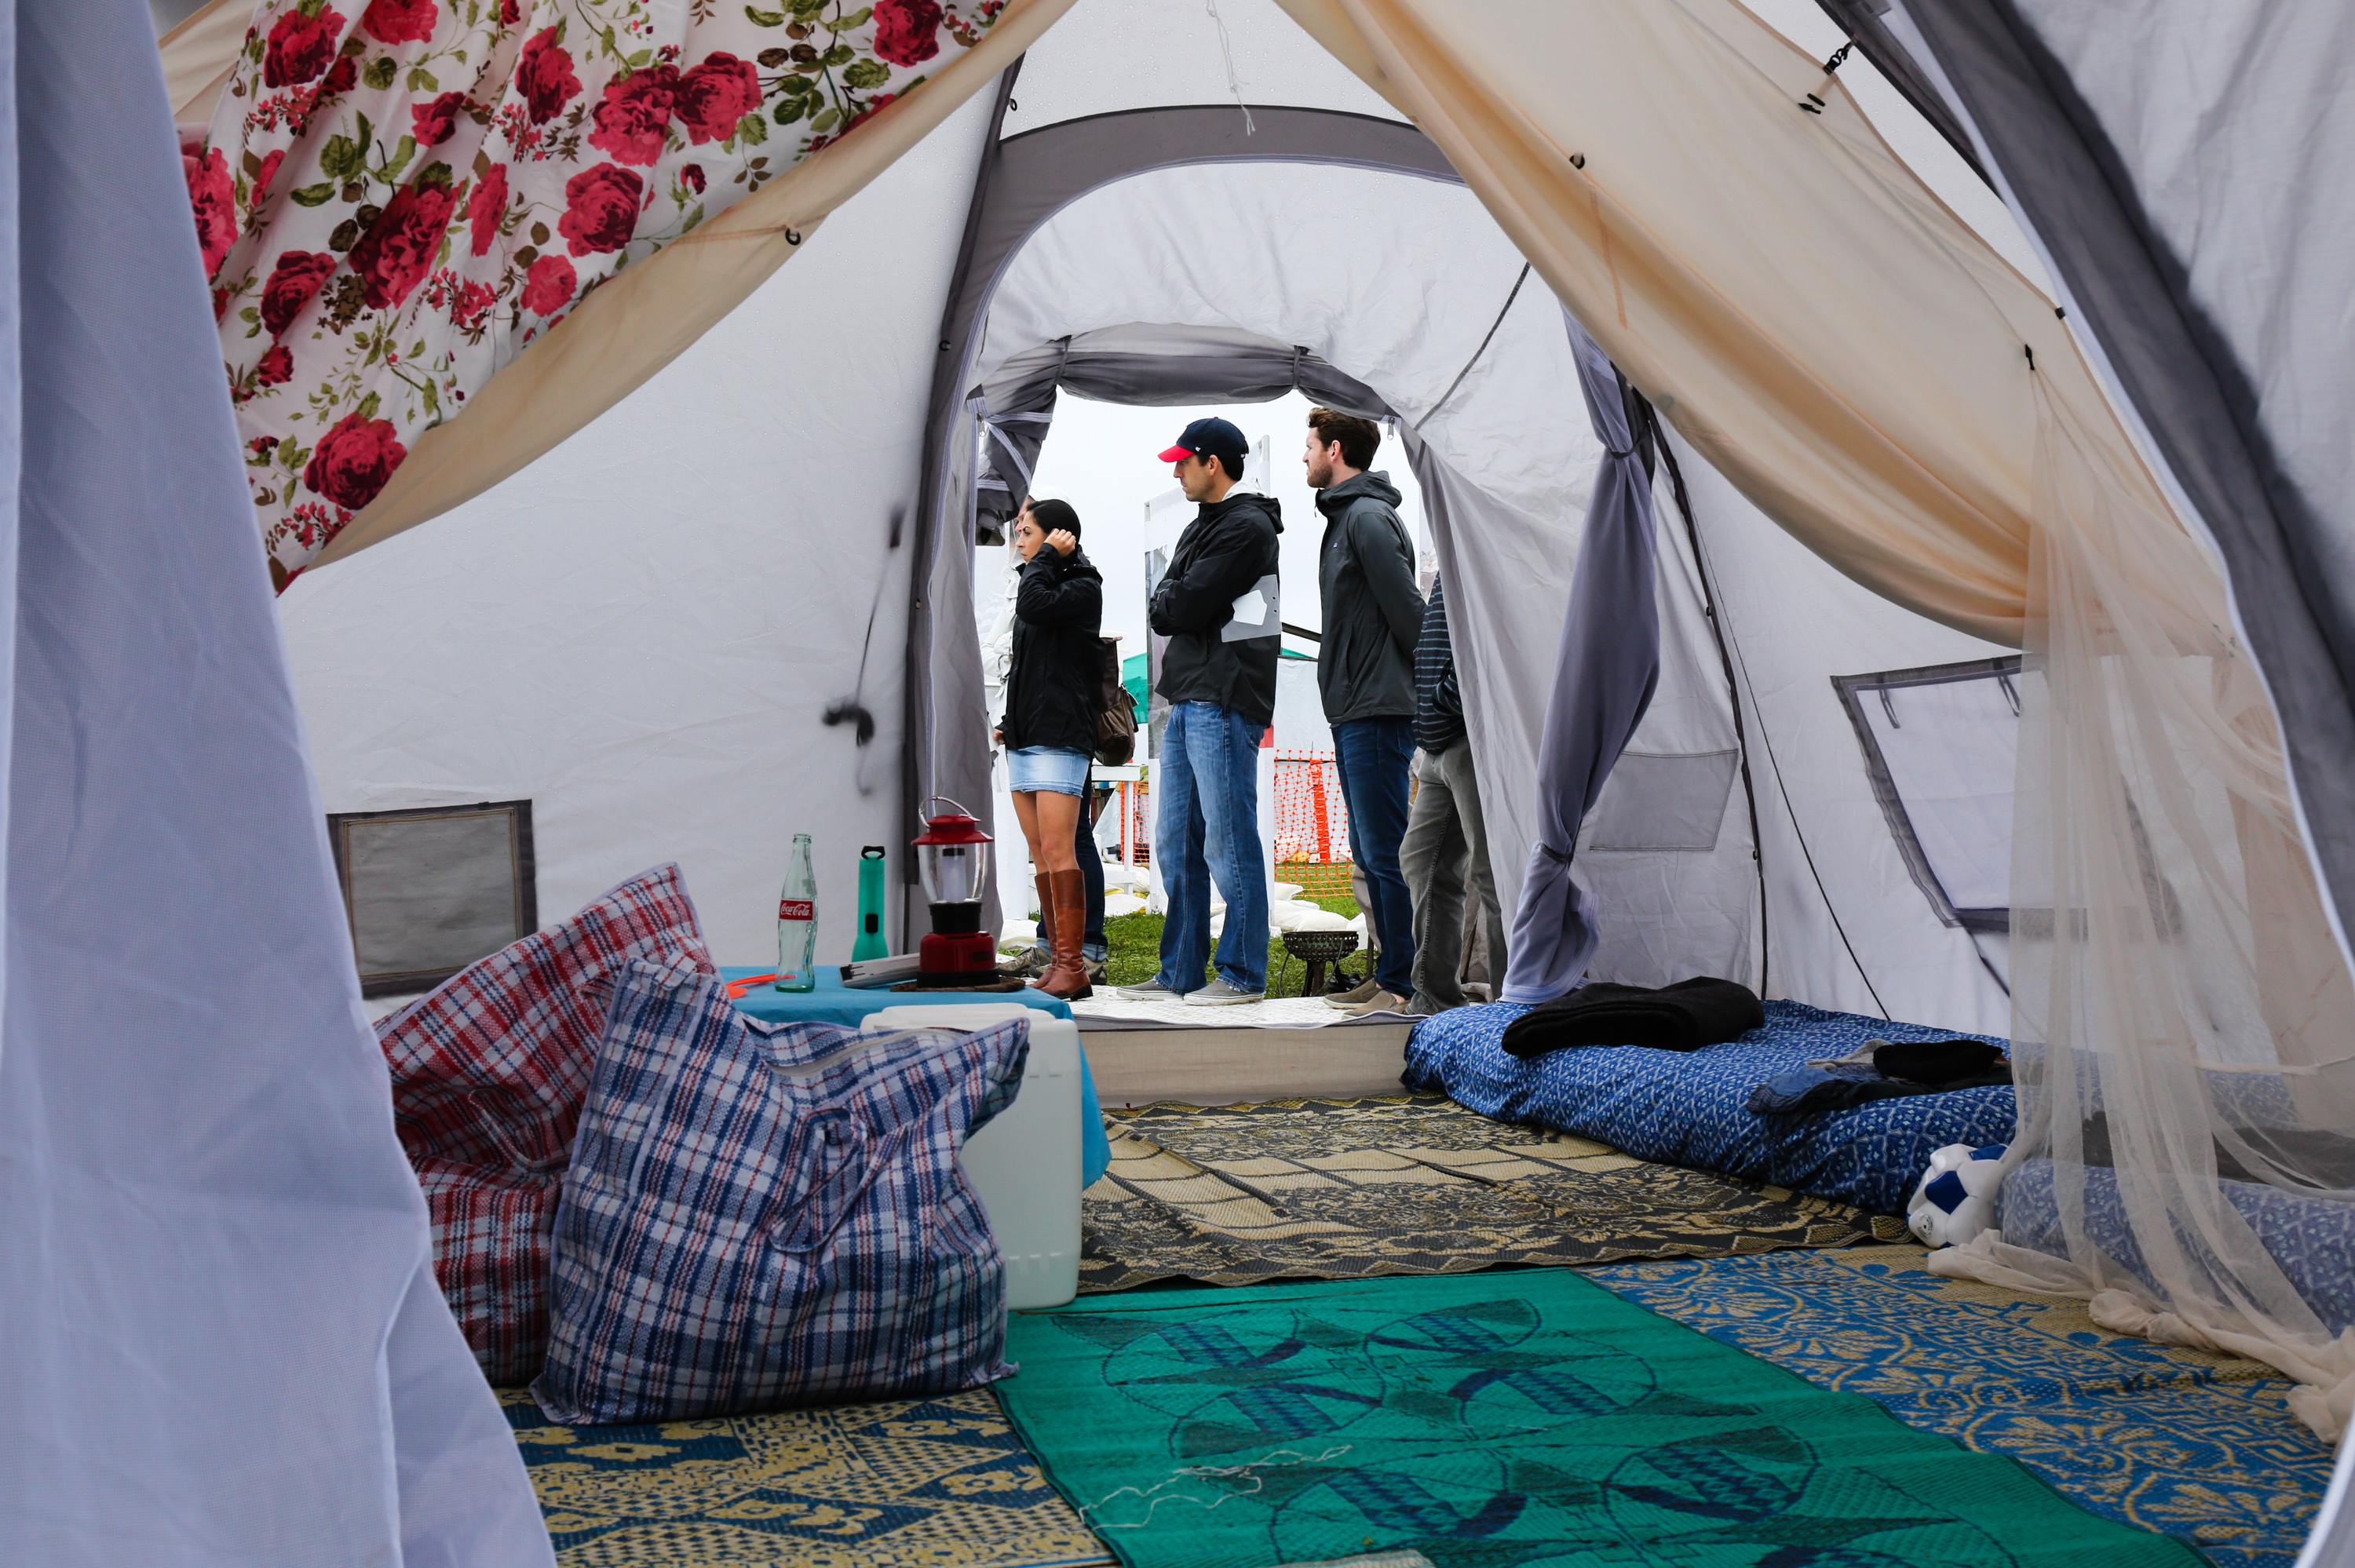 What its like inside a two family tent A cloth divider to split